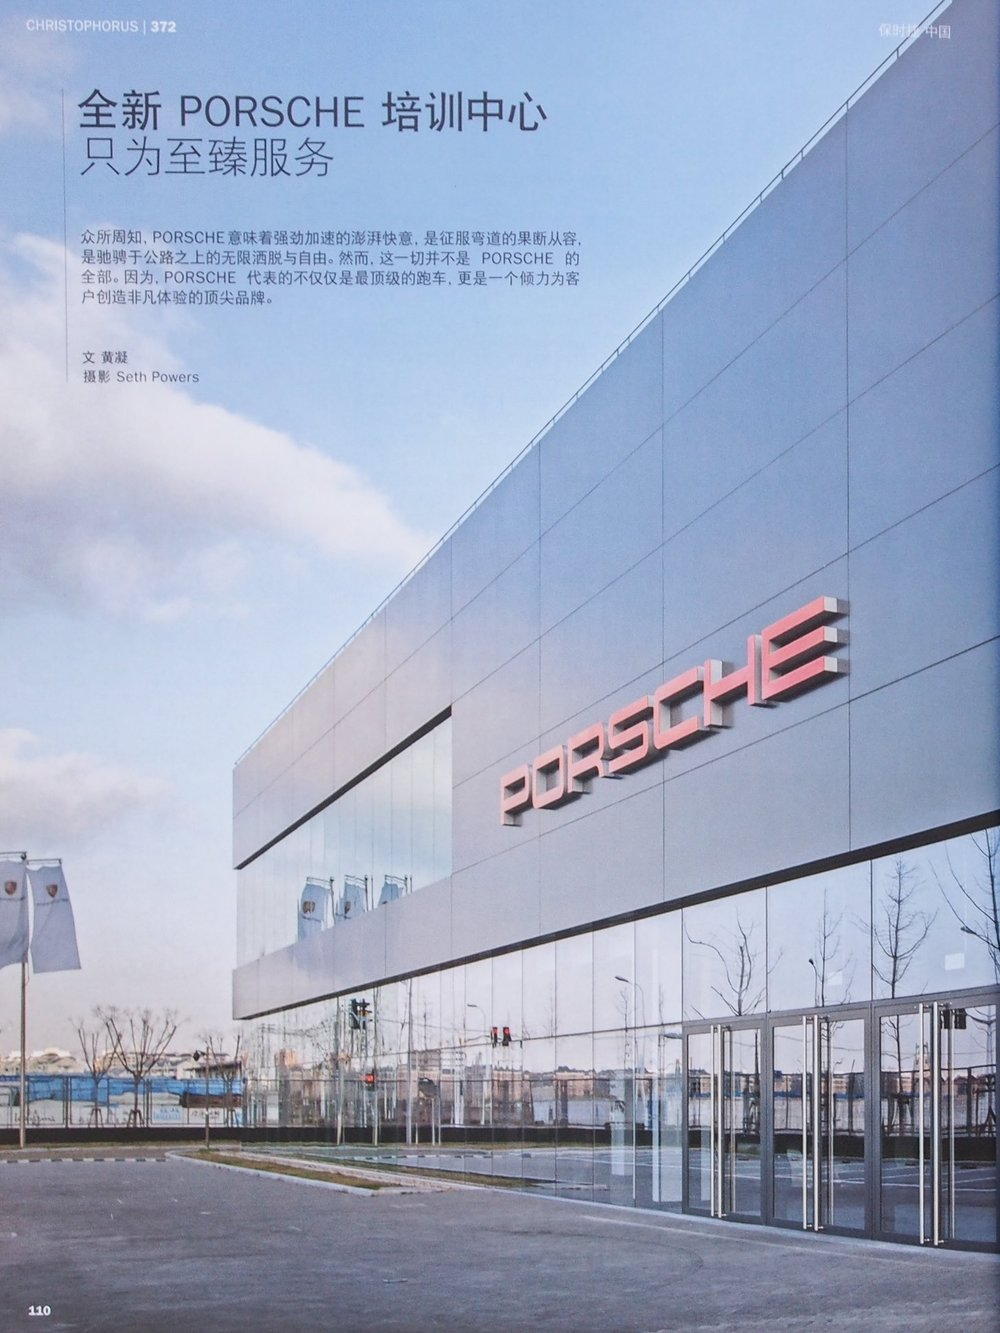 Christophorus | March 2015 - Porsche Training Center in Shanghai